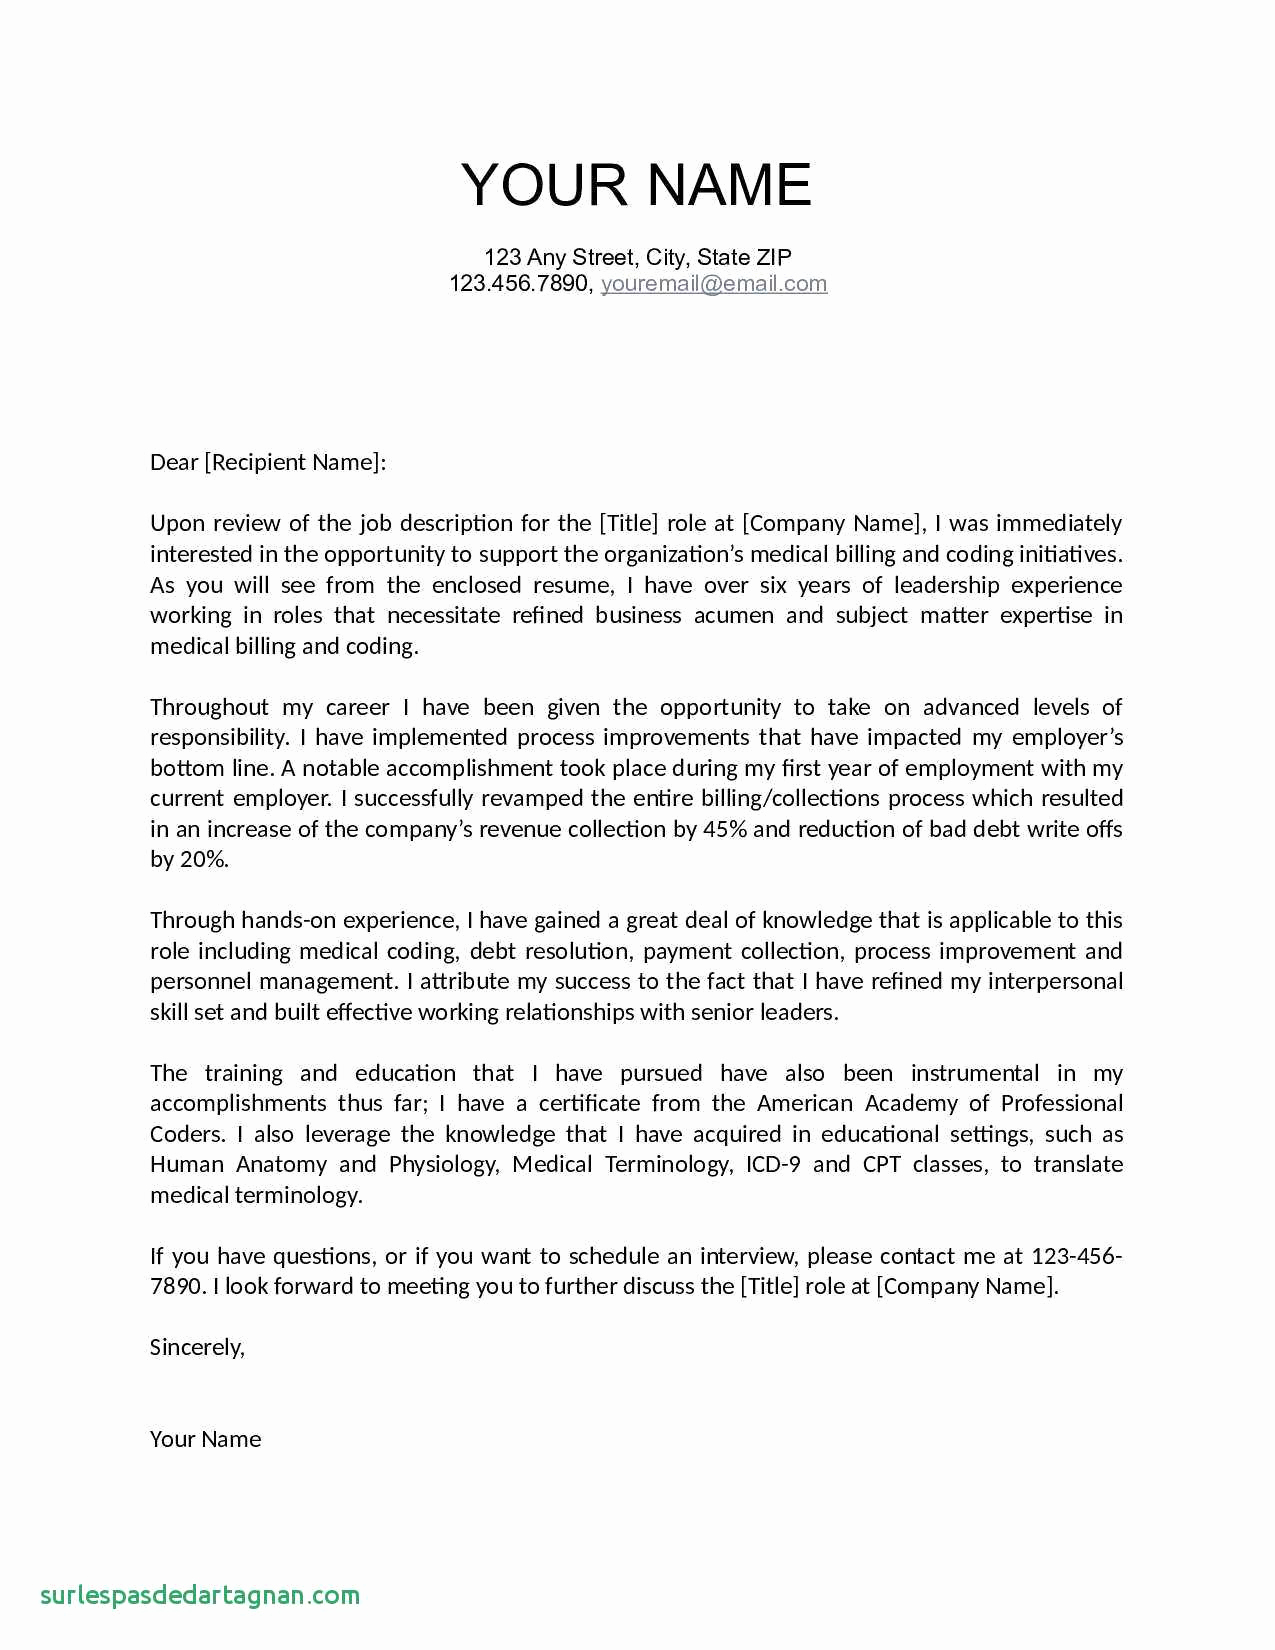 Insurance Referral Letter Template - Diversity and Inclusion Cover Letter Luxury Job Fer Letter Template